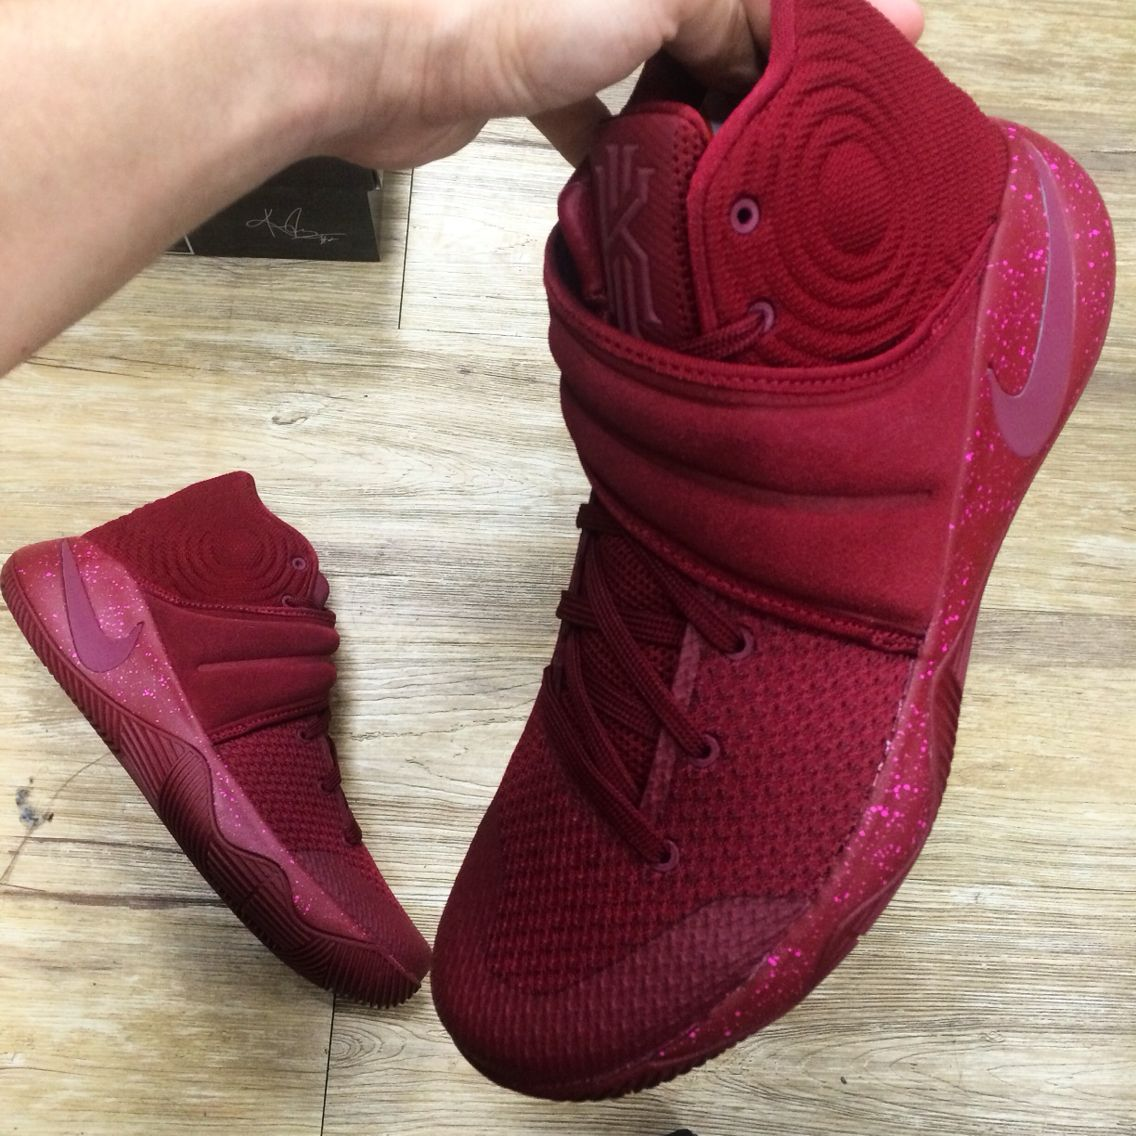 e1f7d4a7ca6a Fluff suede strap first time on Kyrie 2. What do you think   kyrie2   kyrieirving…